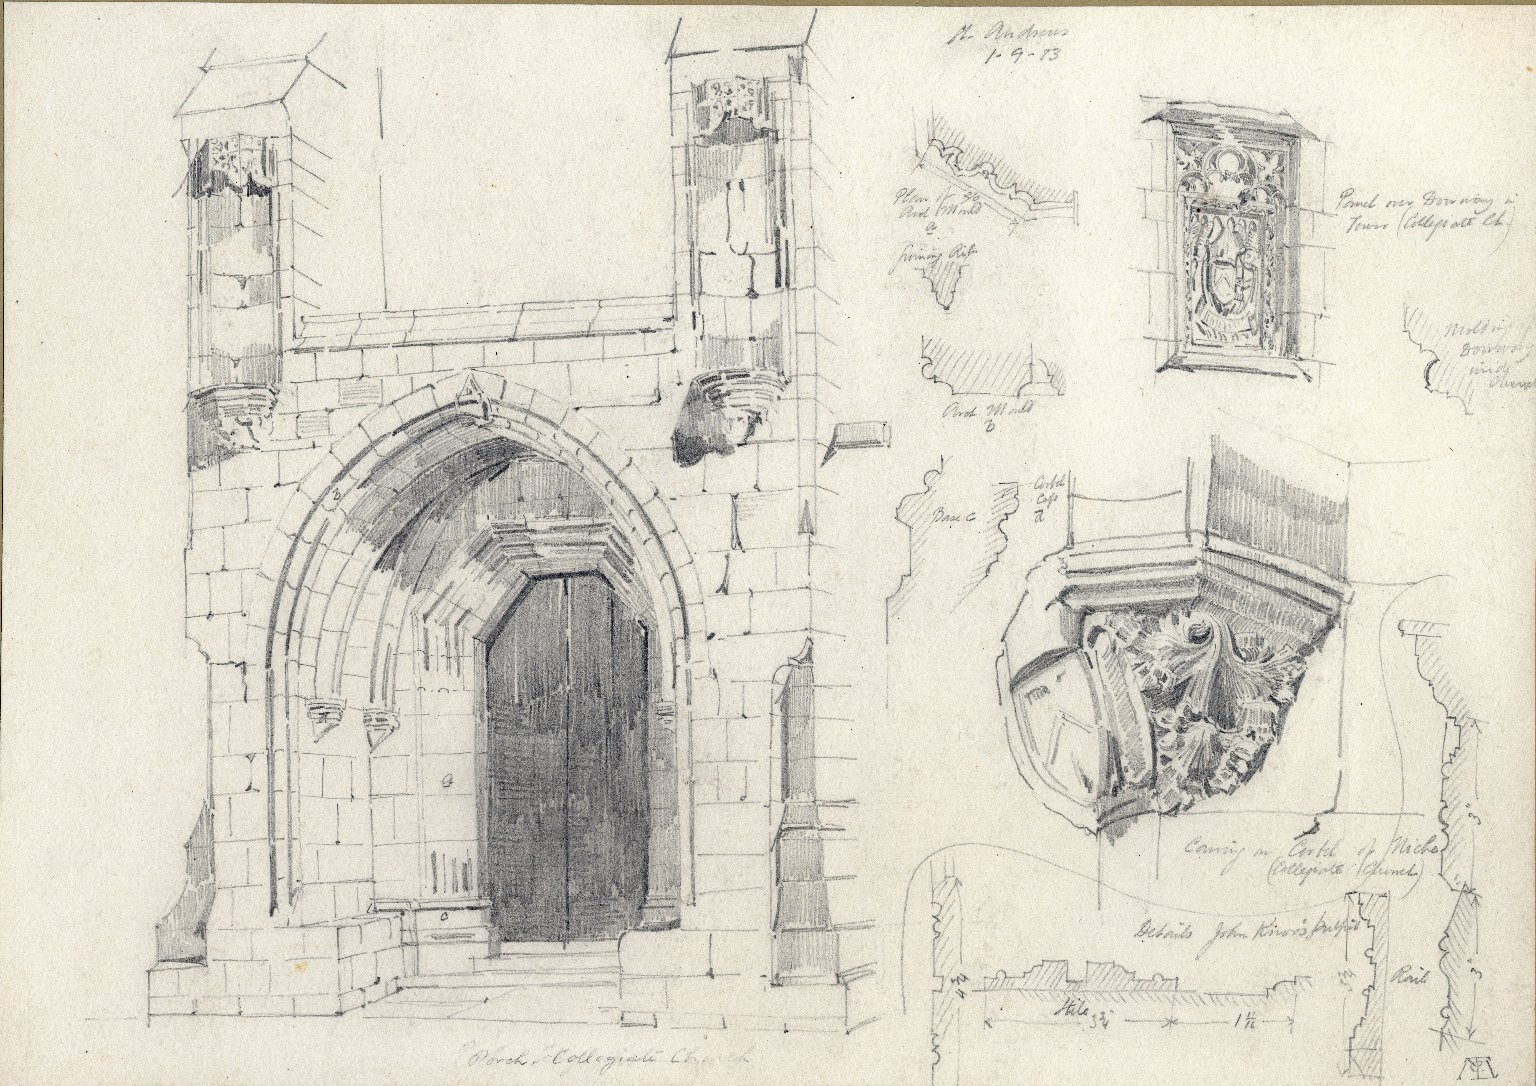 Porch of Collegiate Church at St. Andrew's